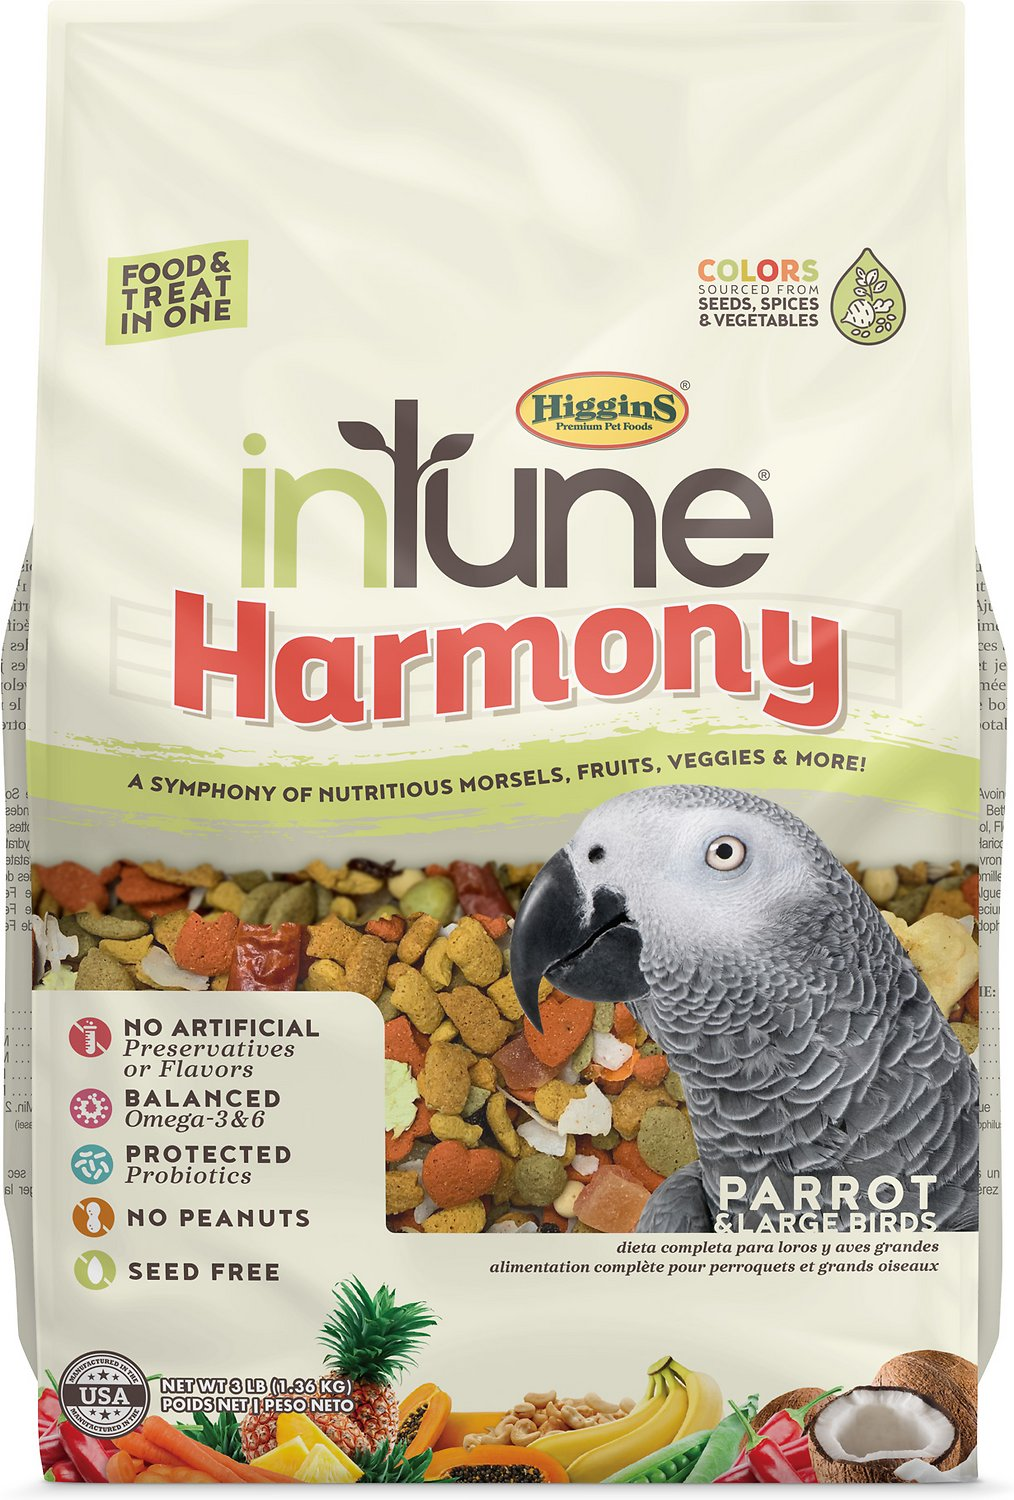 Higgins Intune Parrot and Large Bird Food, 3Lb